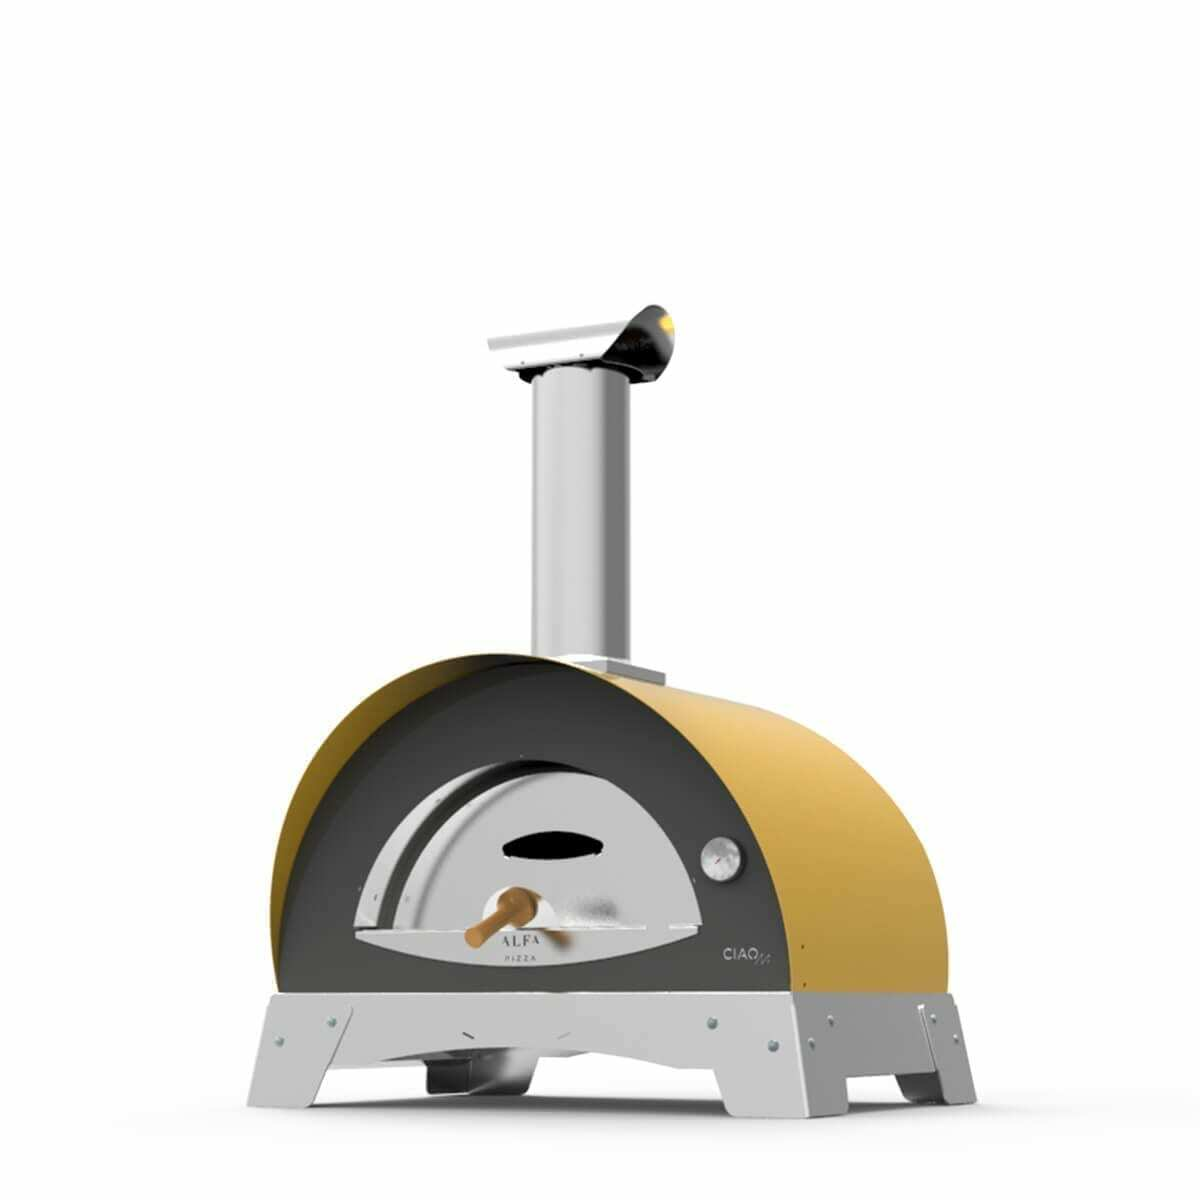 Chicago Outdoor Living's Alfa Ciao Pizza Oven